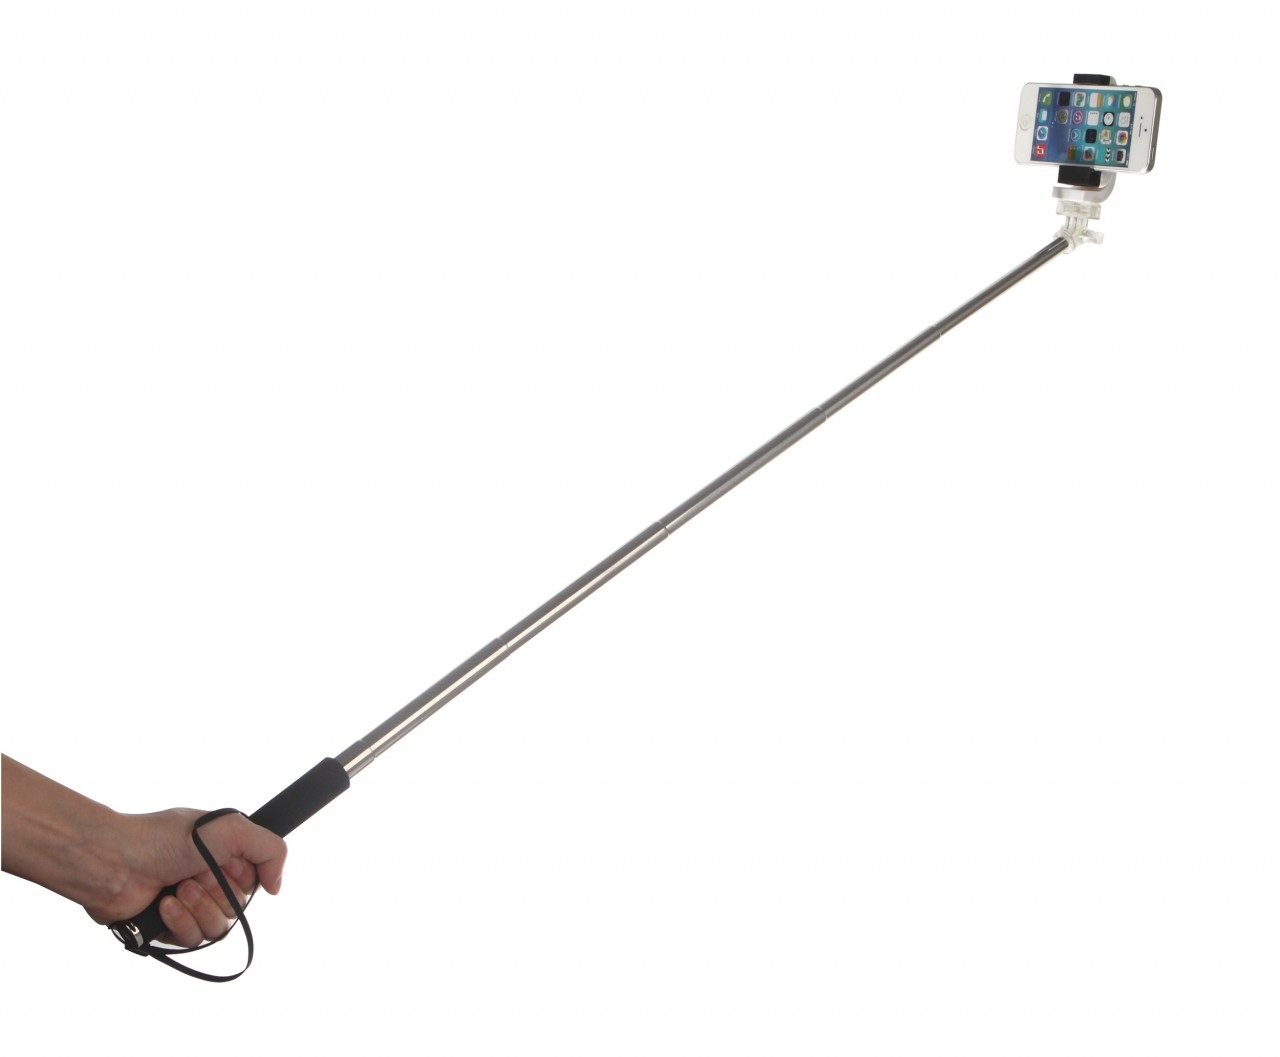 merlin selfie stick price pakistan homeshopping. Black Bedroom Furniture Sets. Home Design Ideas